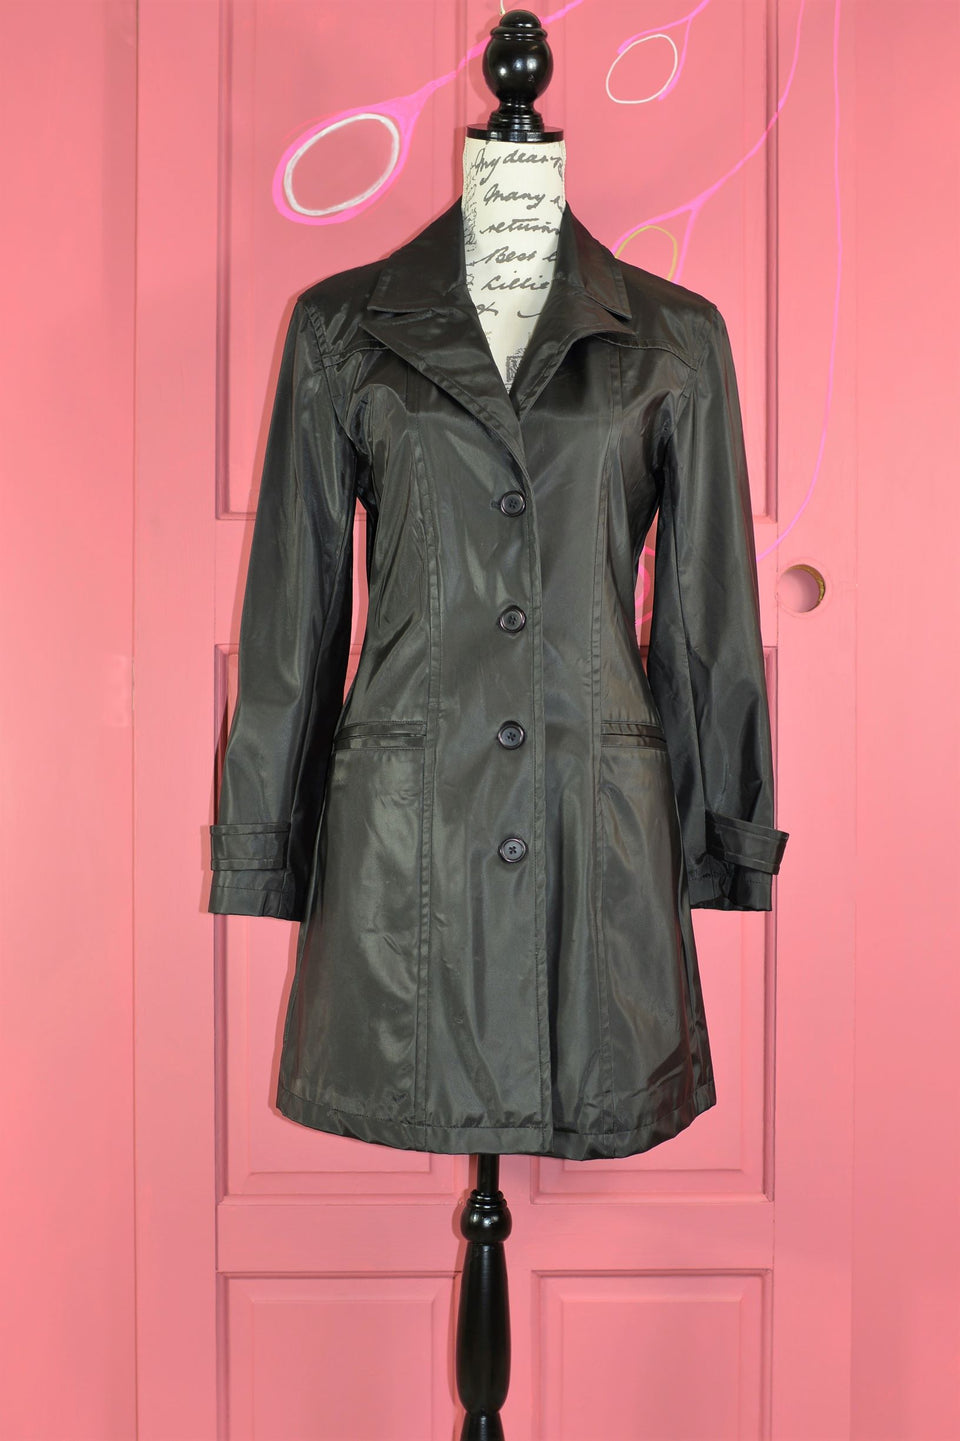 MISS SELFRIDGE Women's Black Single Breasted Coat, Size 10. Pre-loved.